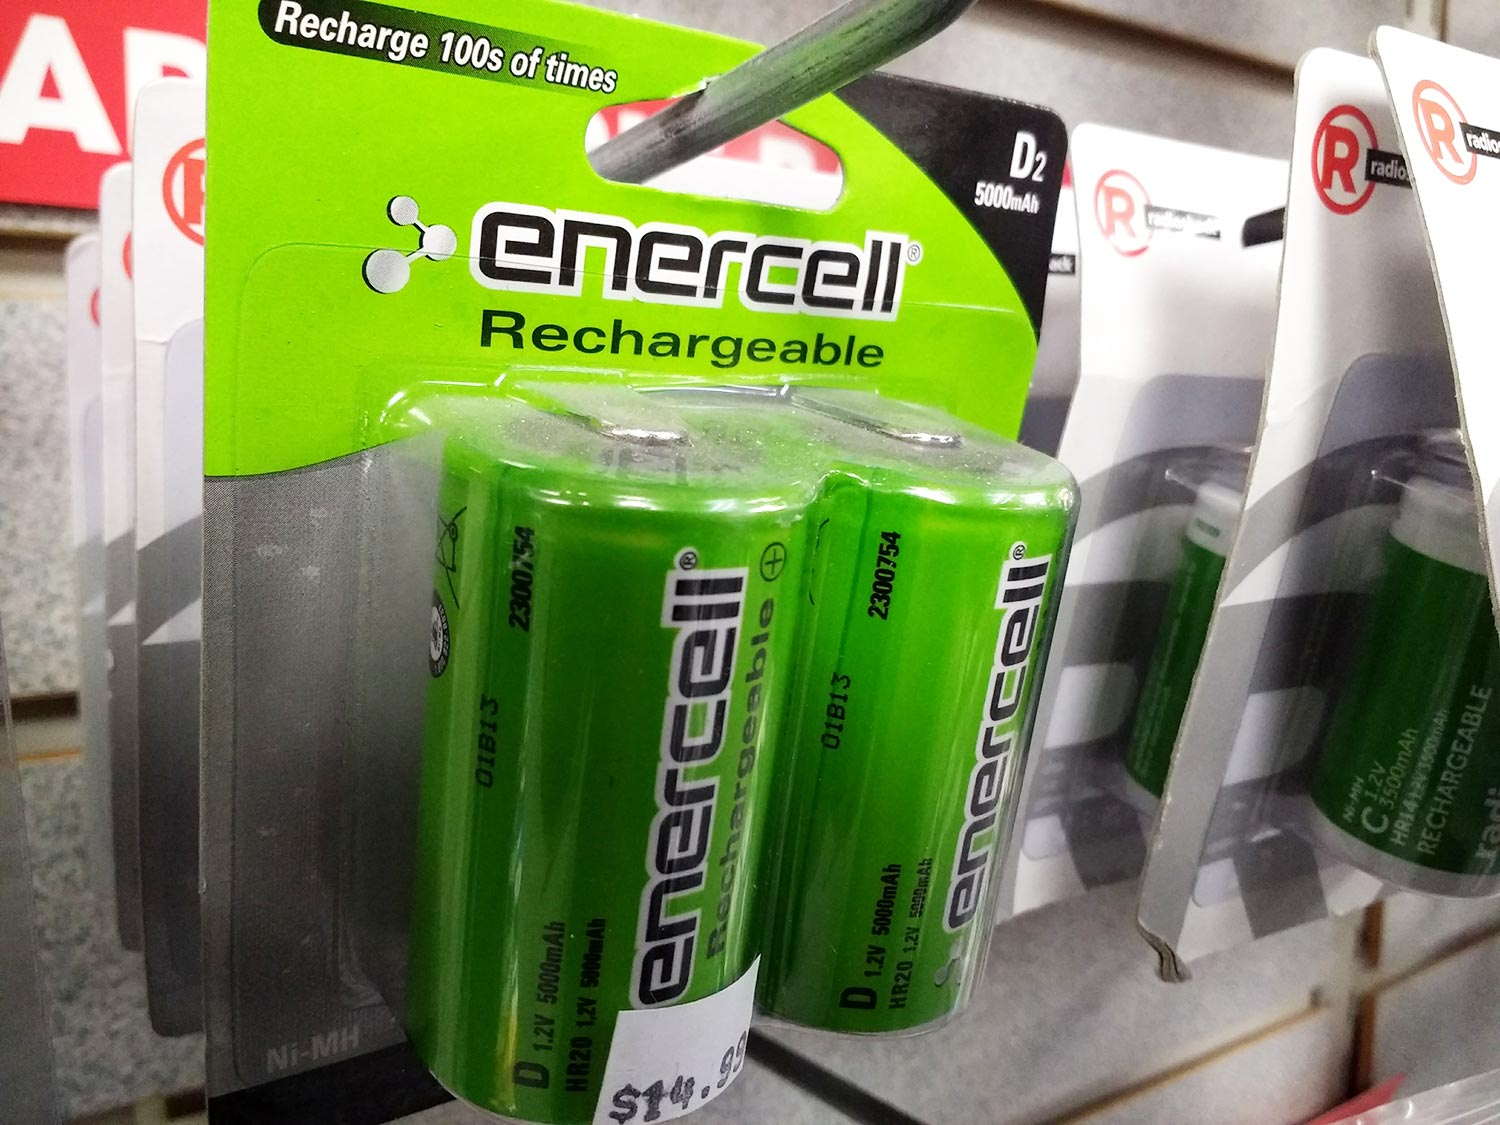 Our rechargeable battery selection offers great savings and green power options.